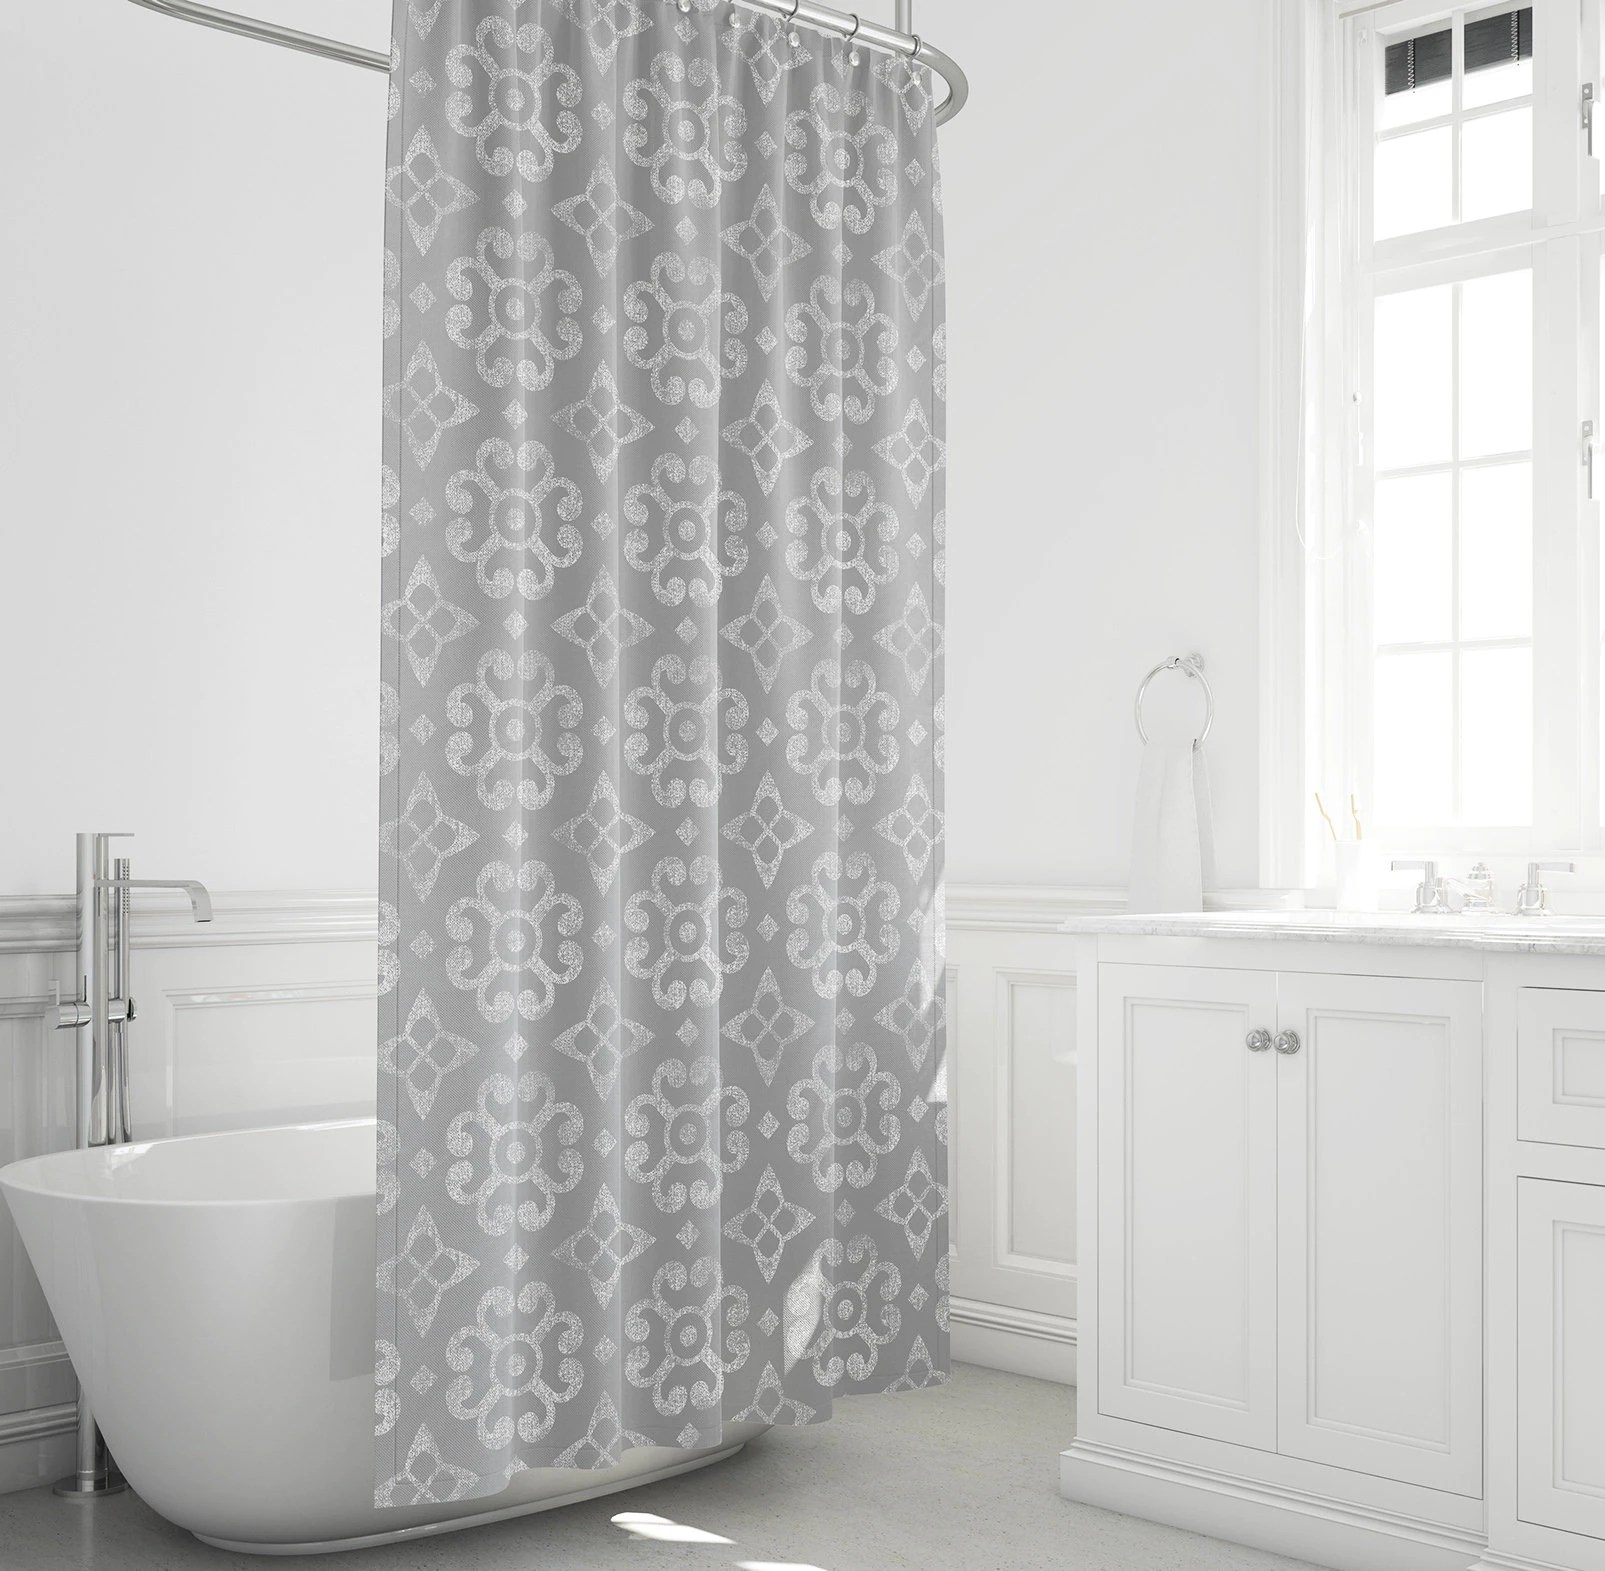 Cheap Rustic Shower Curtains Farmhouse Shower Curtain Gray And White Bathroom Decor